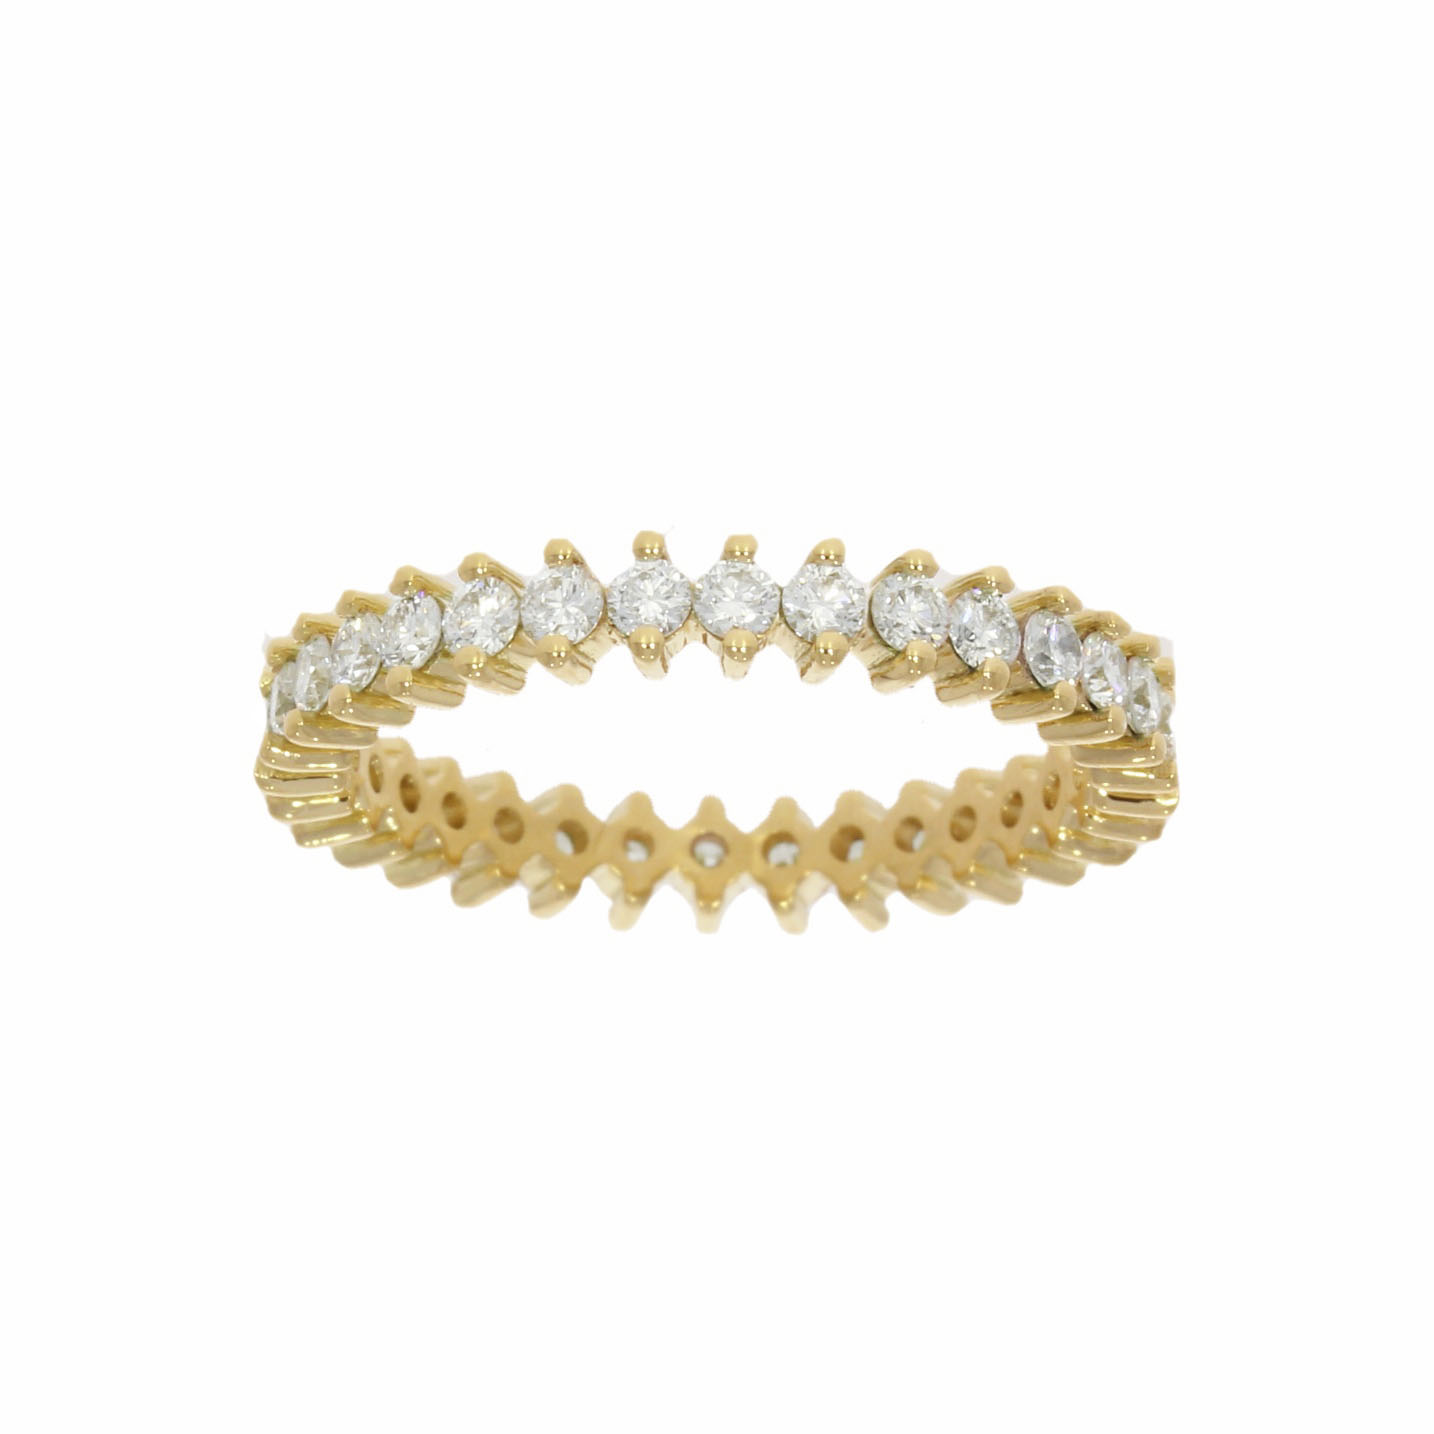 unusual alternative 2 claw et eternity ring yellow gold diamond modern stylish